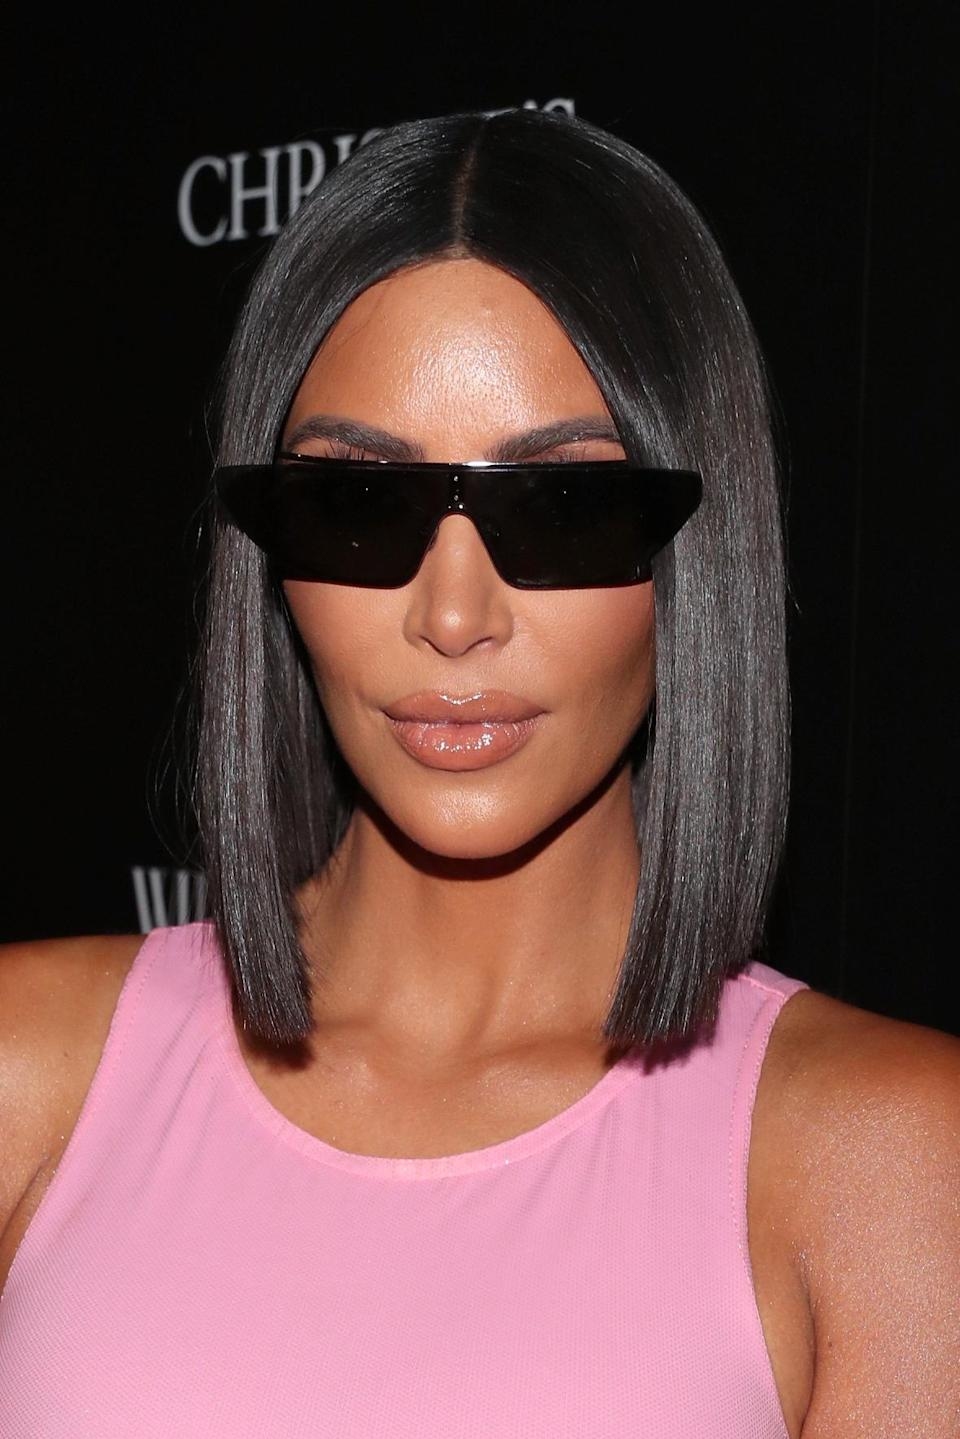 Kim Kardashian's latest photo of daughter North has been criticized. (Photo: Christopher Polk/Getty Images)